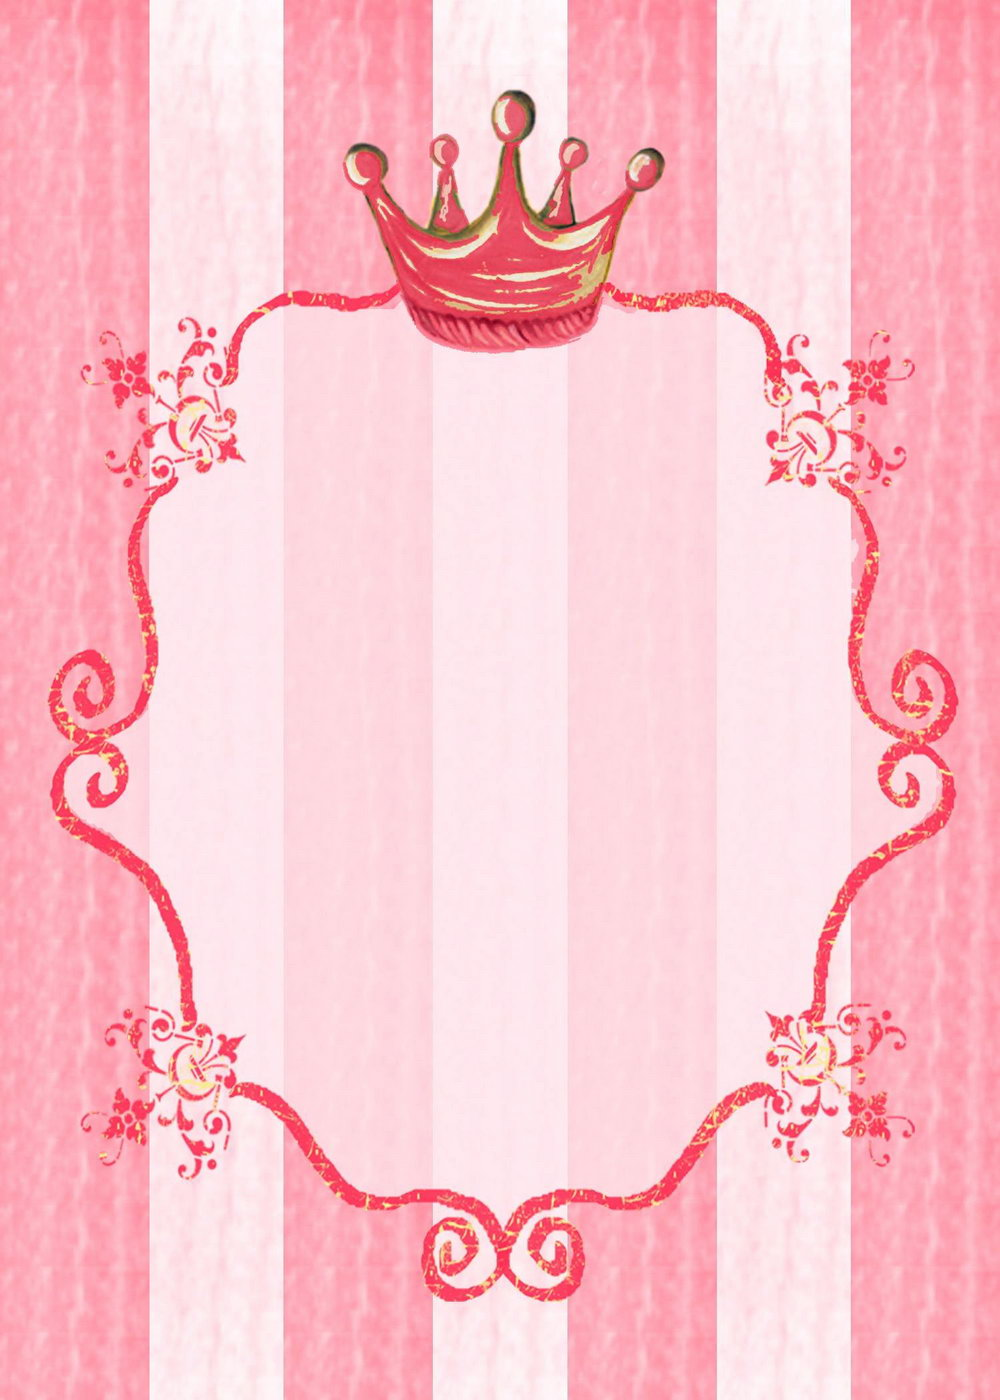 Royal Princess Invitation Template